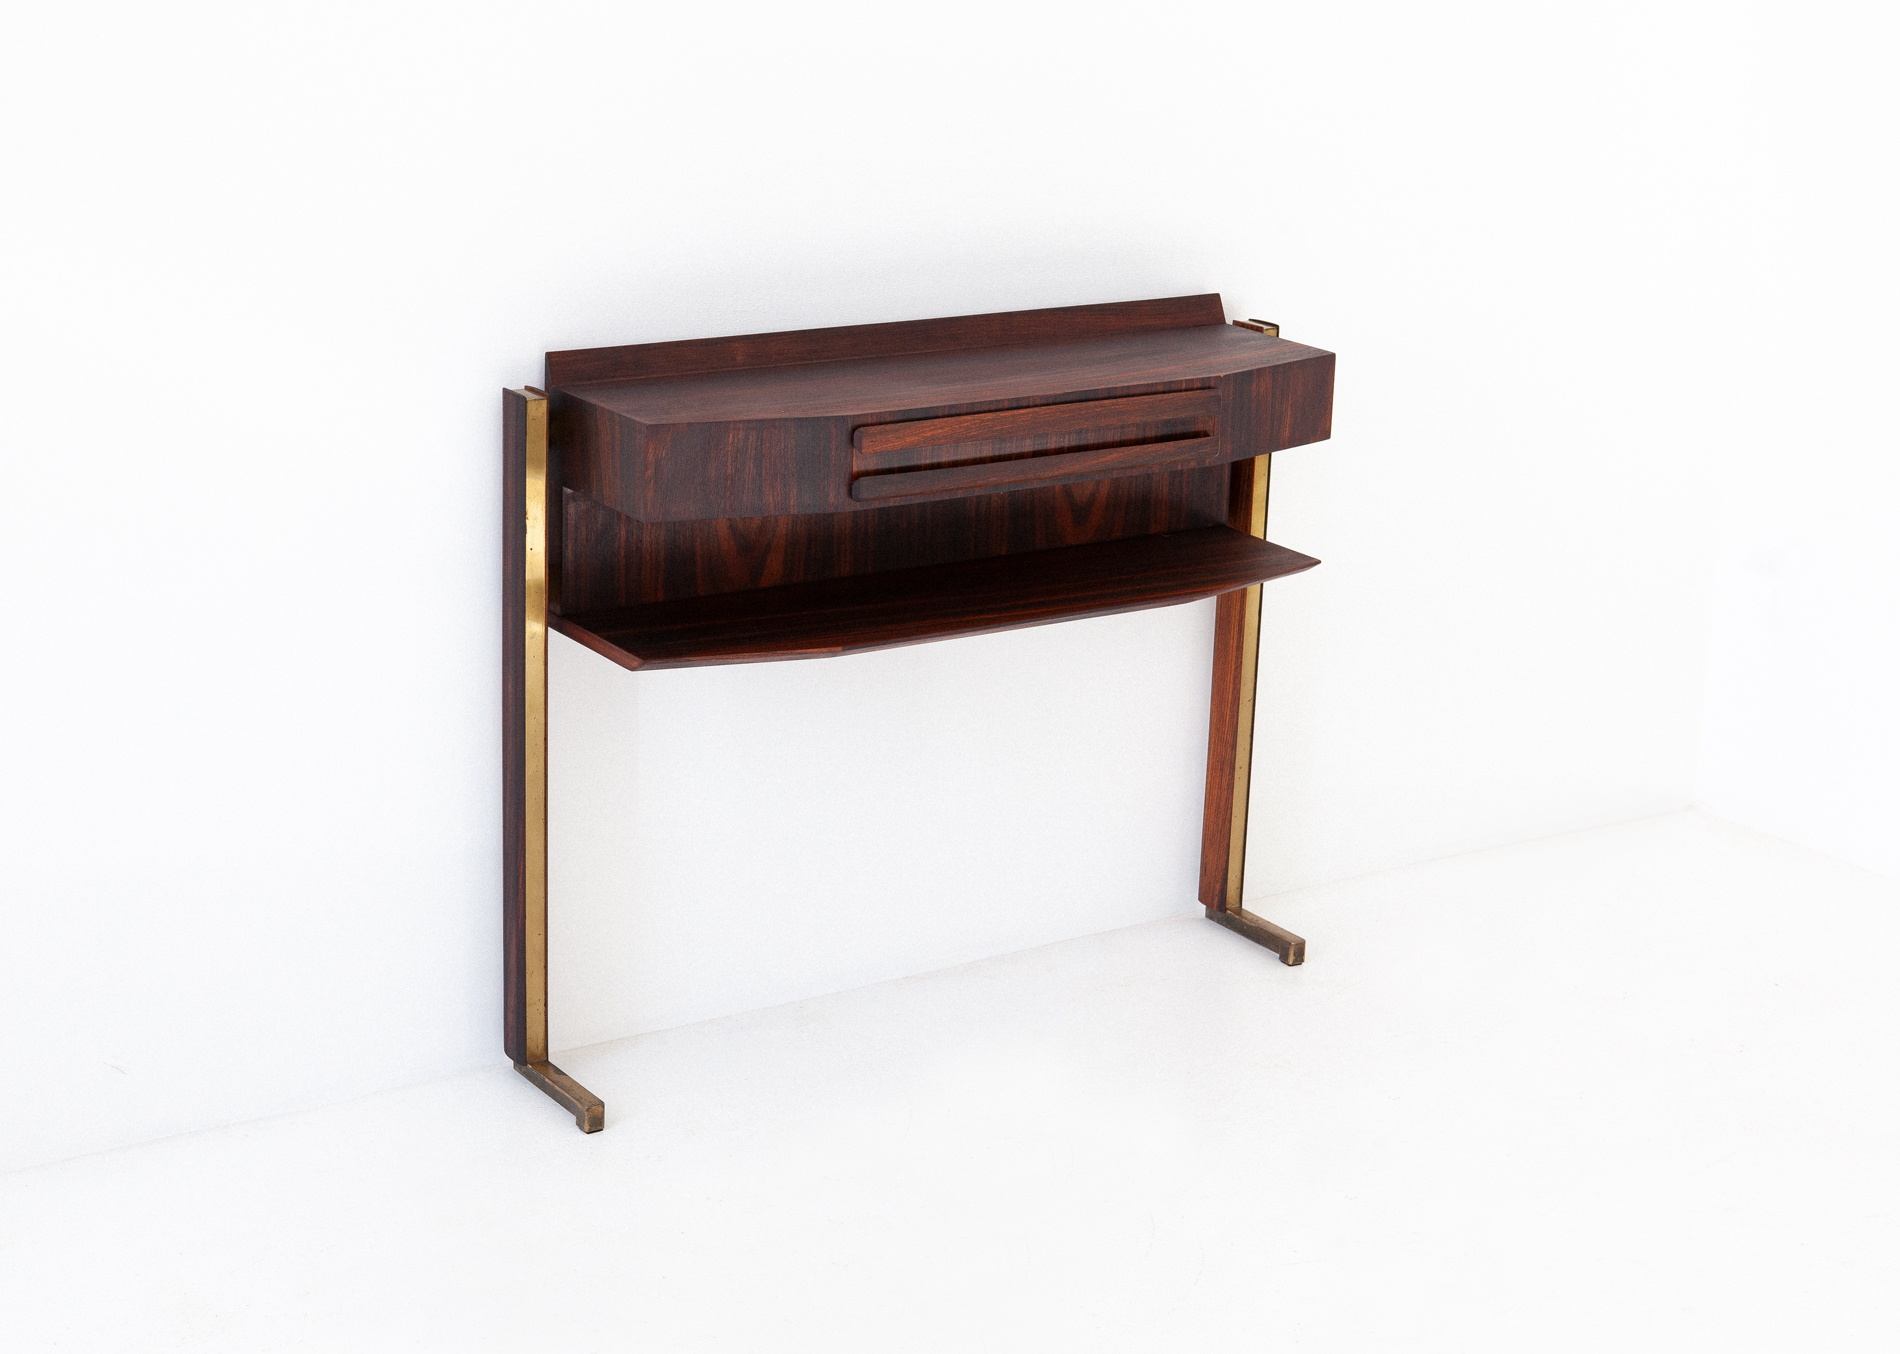 OF85-retro4m-1950s-italian-rosewood-brass-console-table-10